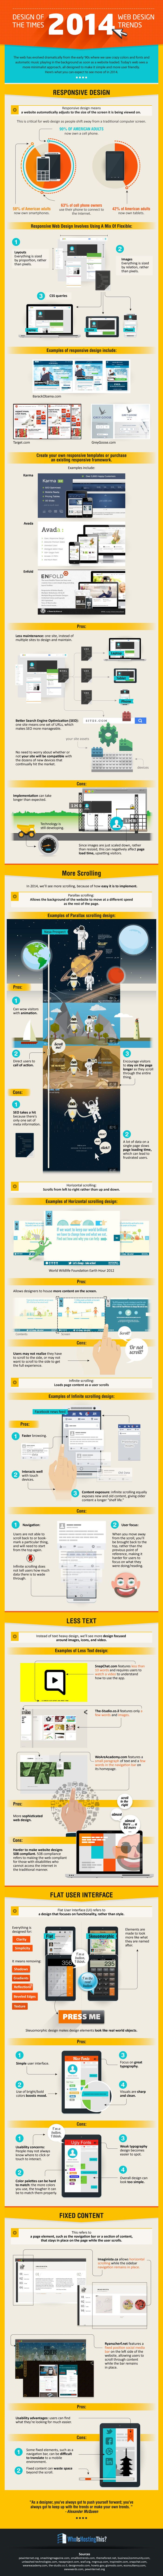 Infographic Looks At Web Design Trends | WebProNews - Web design trends leading the pack in 2014.  #webdesign #design #seo